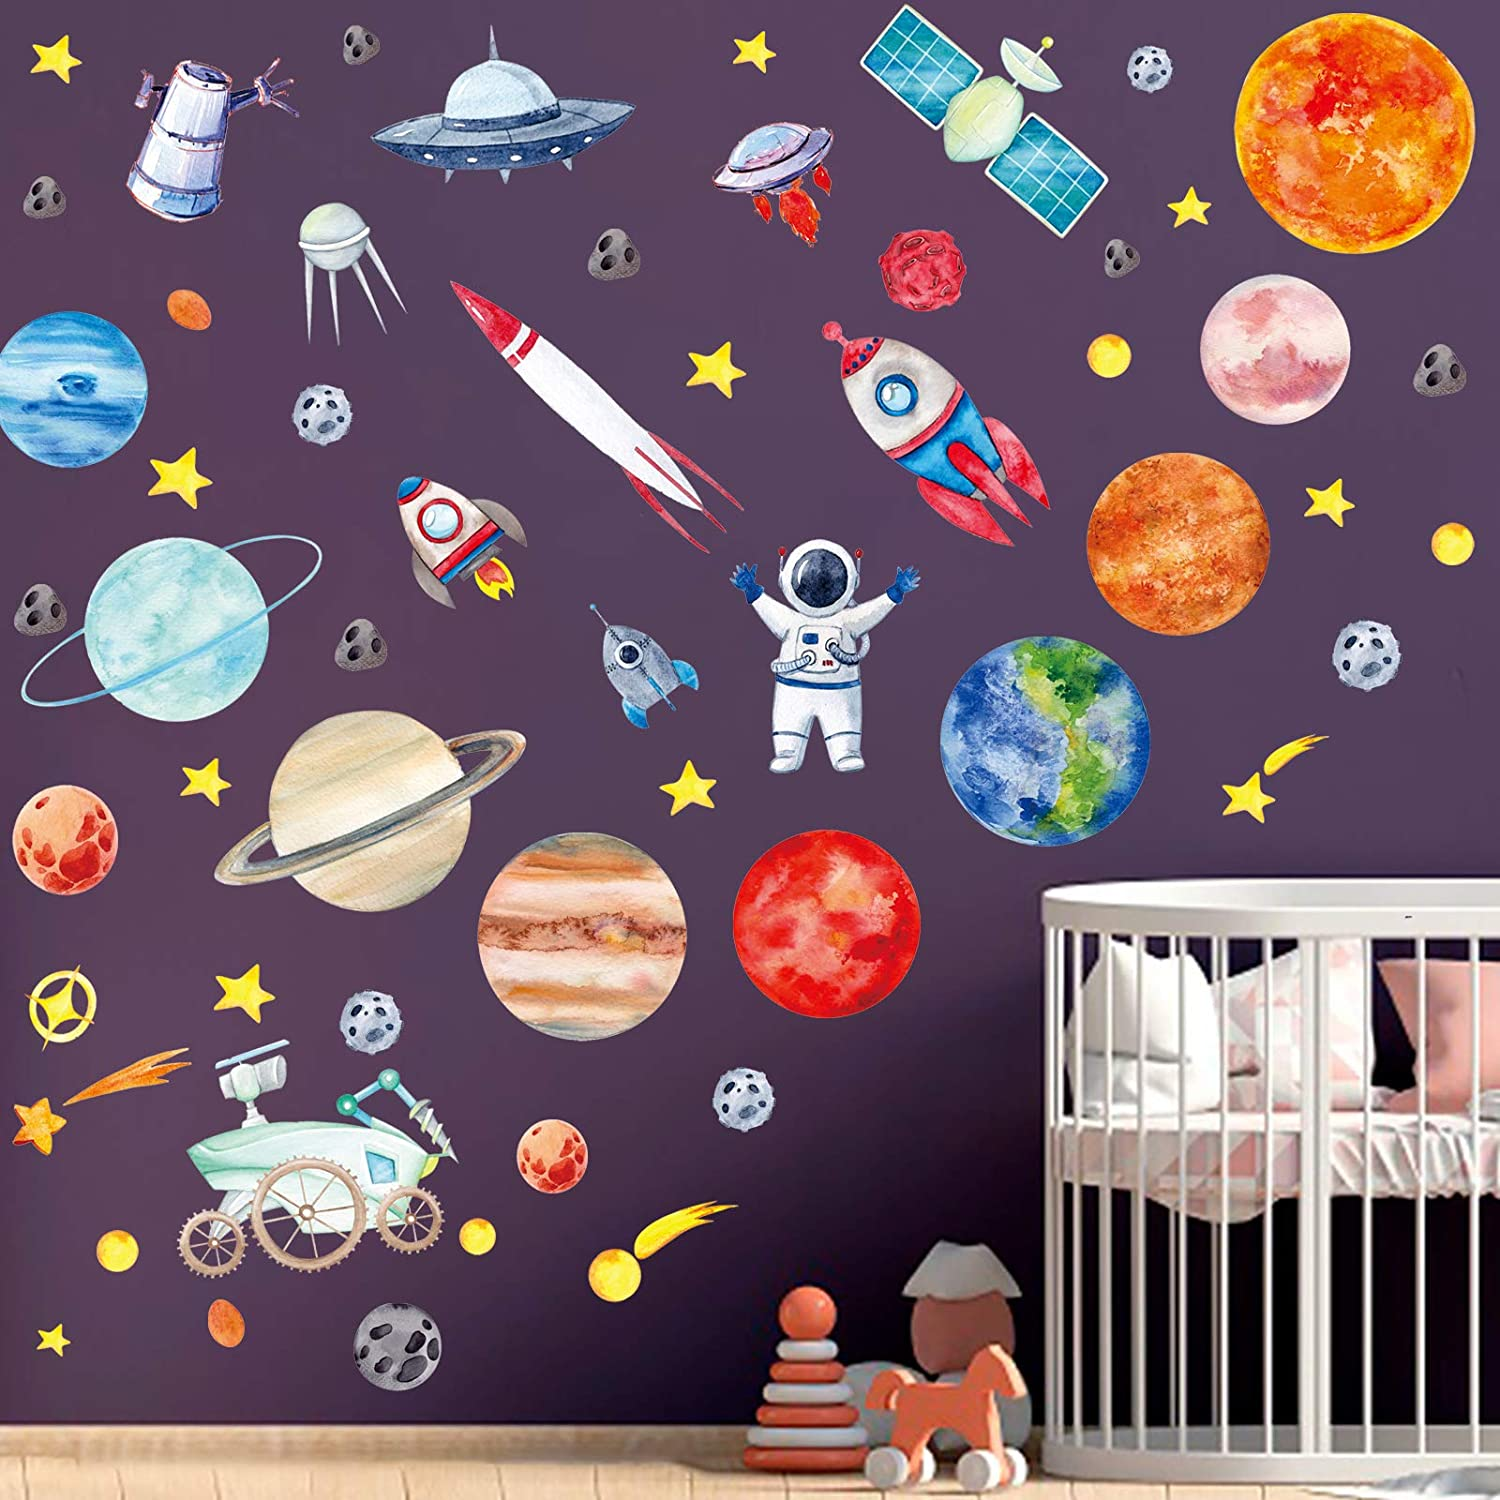 4 Sheets Space Wall Stickers,Galaxy Astronaut Rocket Spacecraft Alien Decoration,Planet Wall Decals,Solar System Wall Stickers for Kids, Planet Wall Decals, lanets Spaceship Stars Decal Decoration